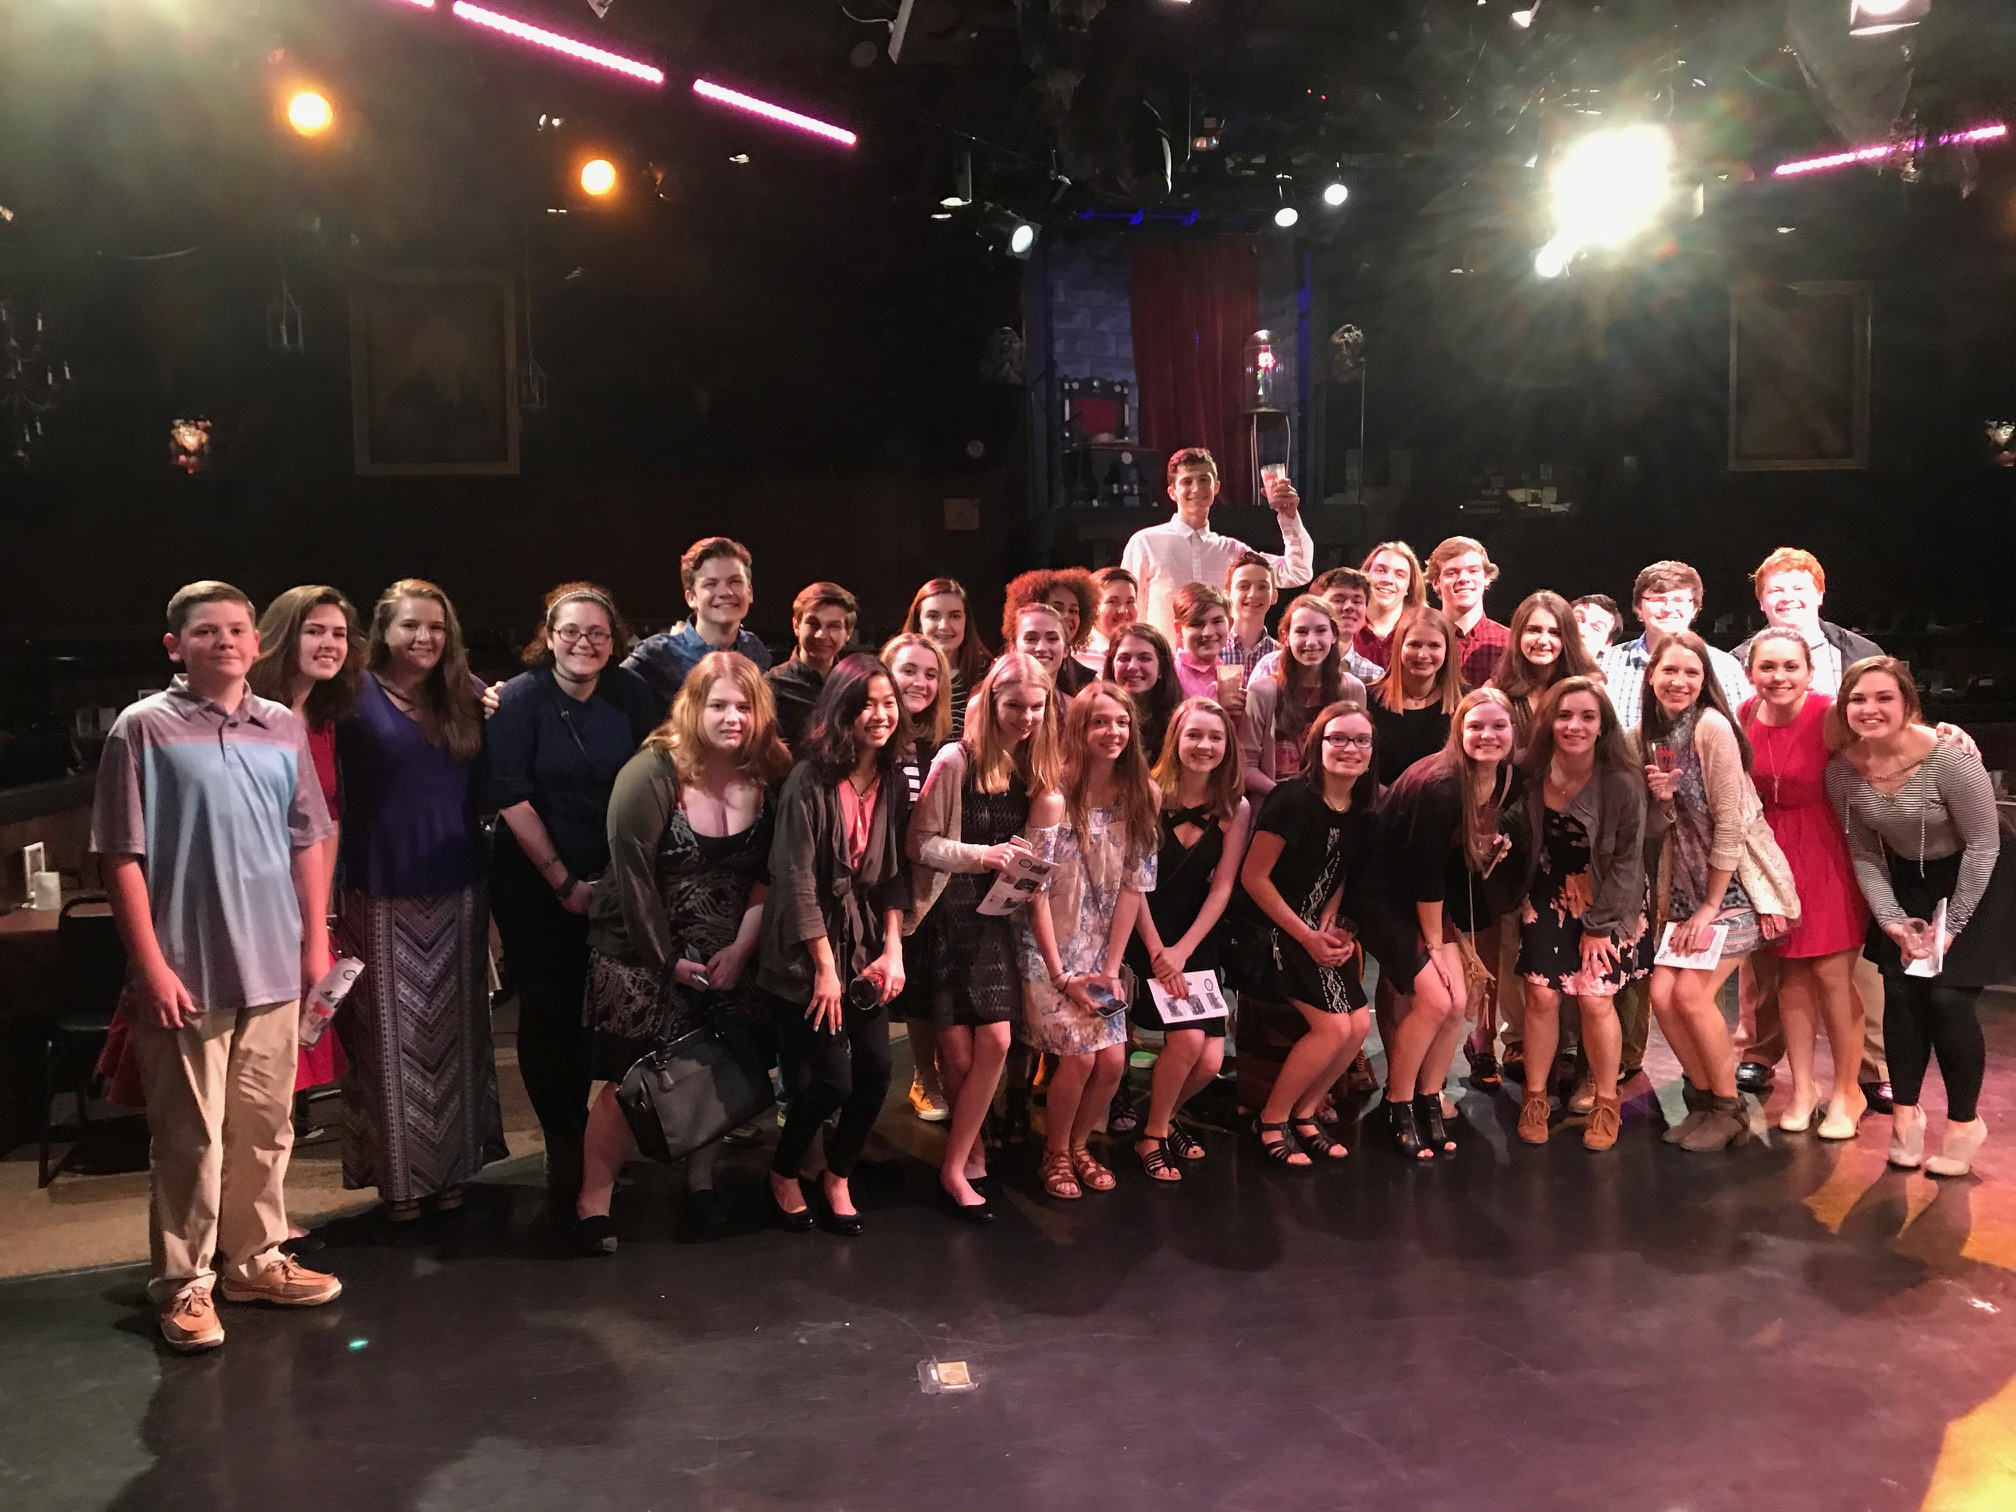 The Drama Club @ Toby's Dinner Theatre 2017